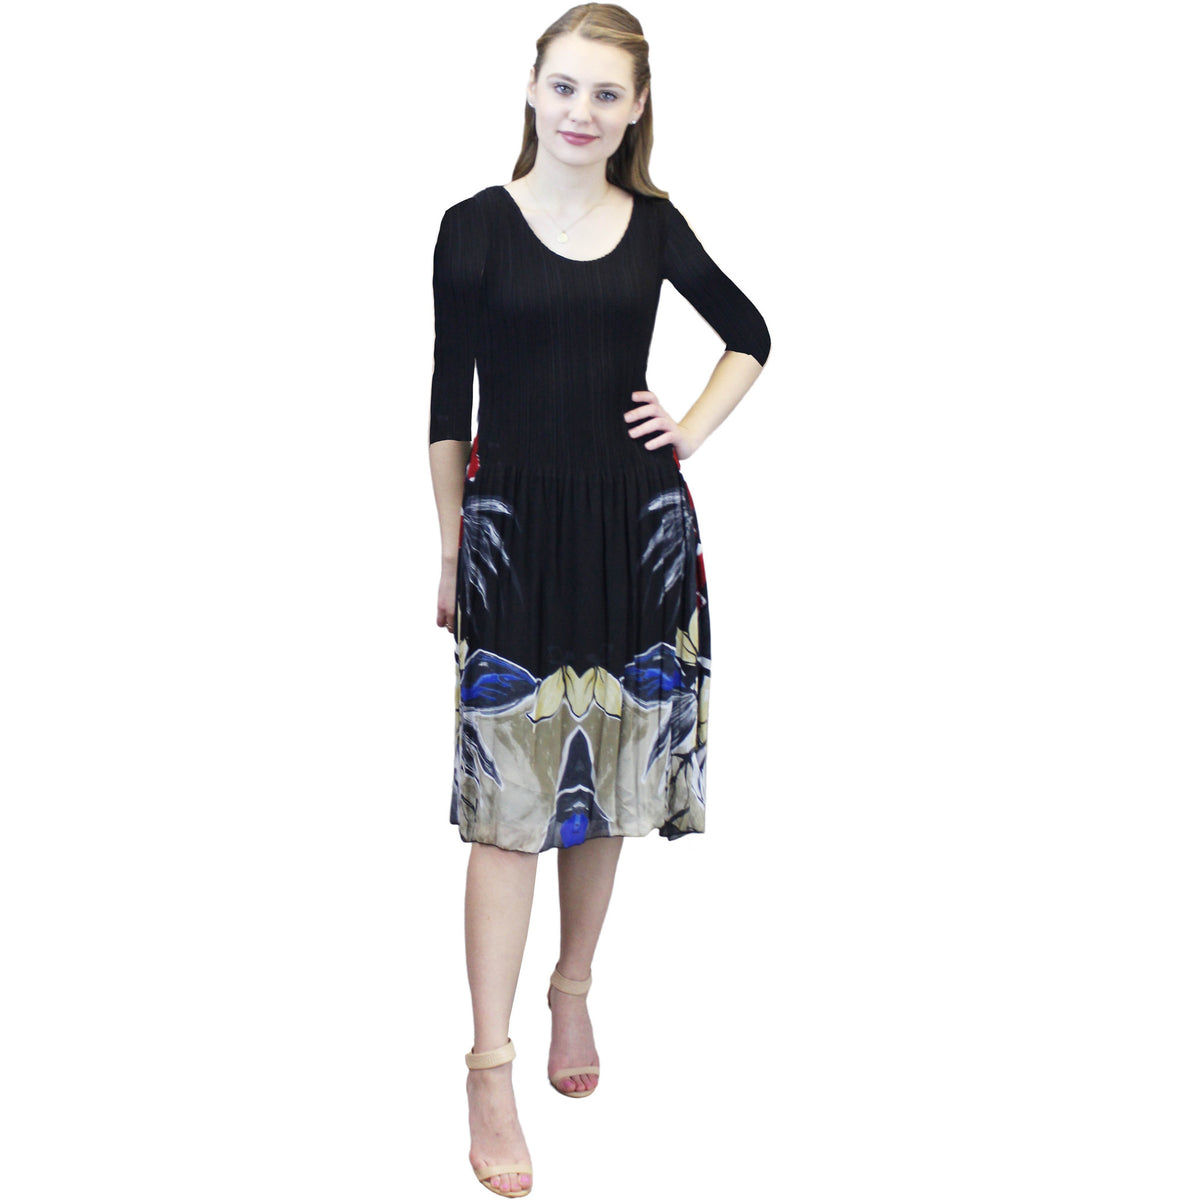 3/4 Sleeve Skirt Print Crinkle Dress - Black